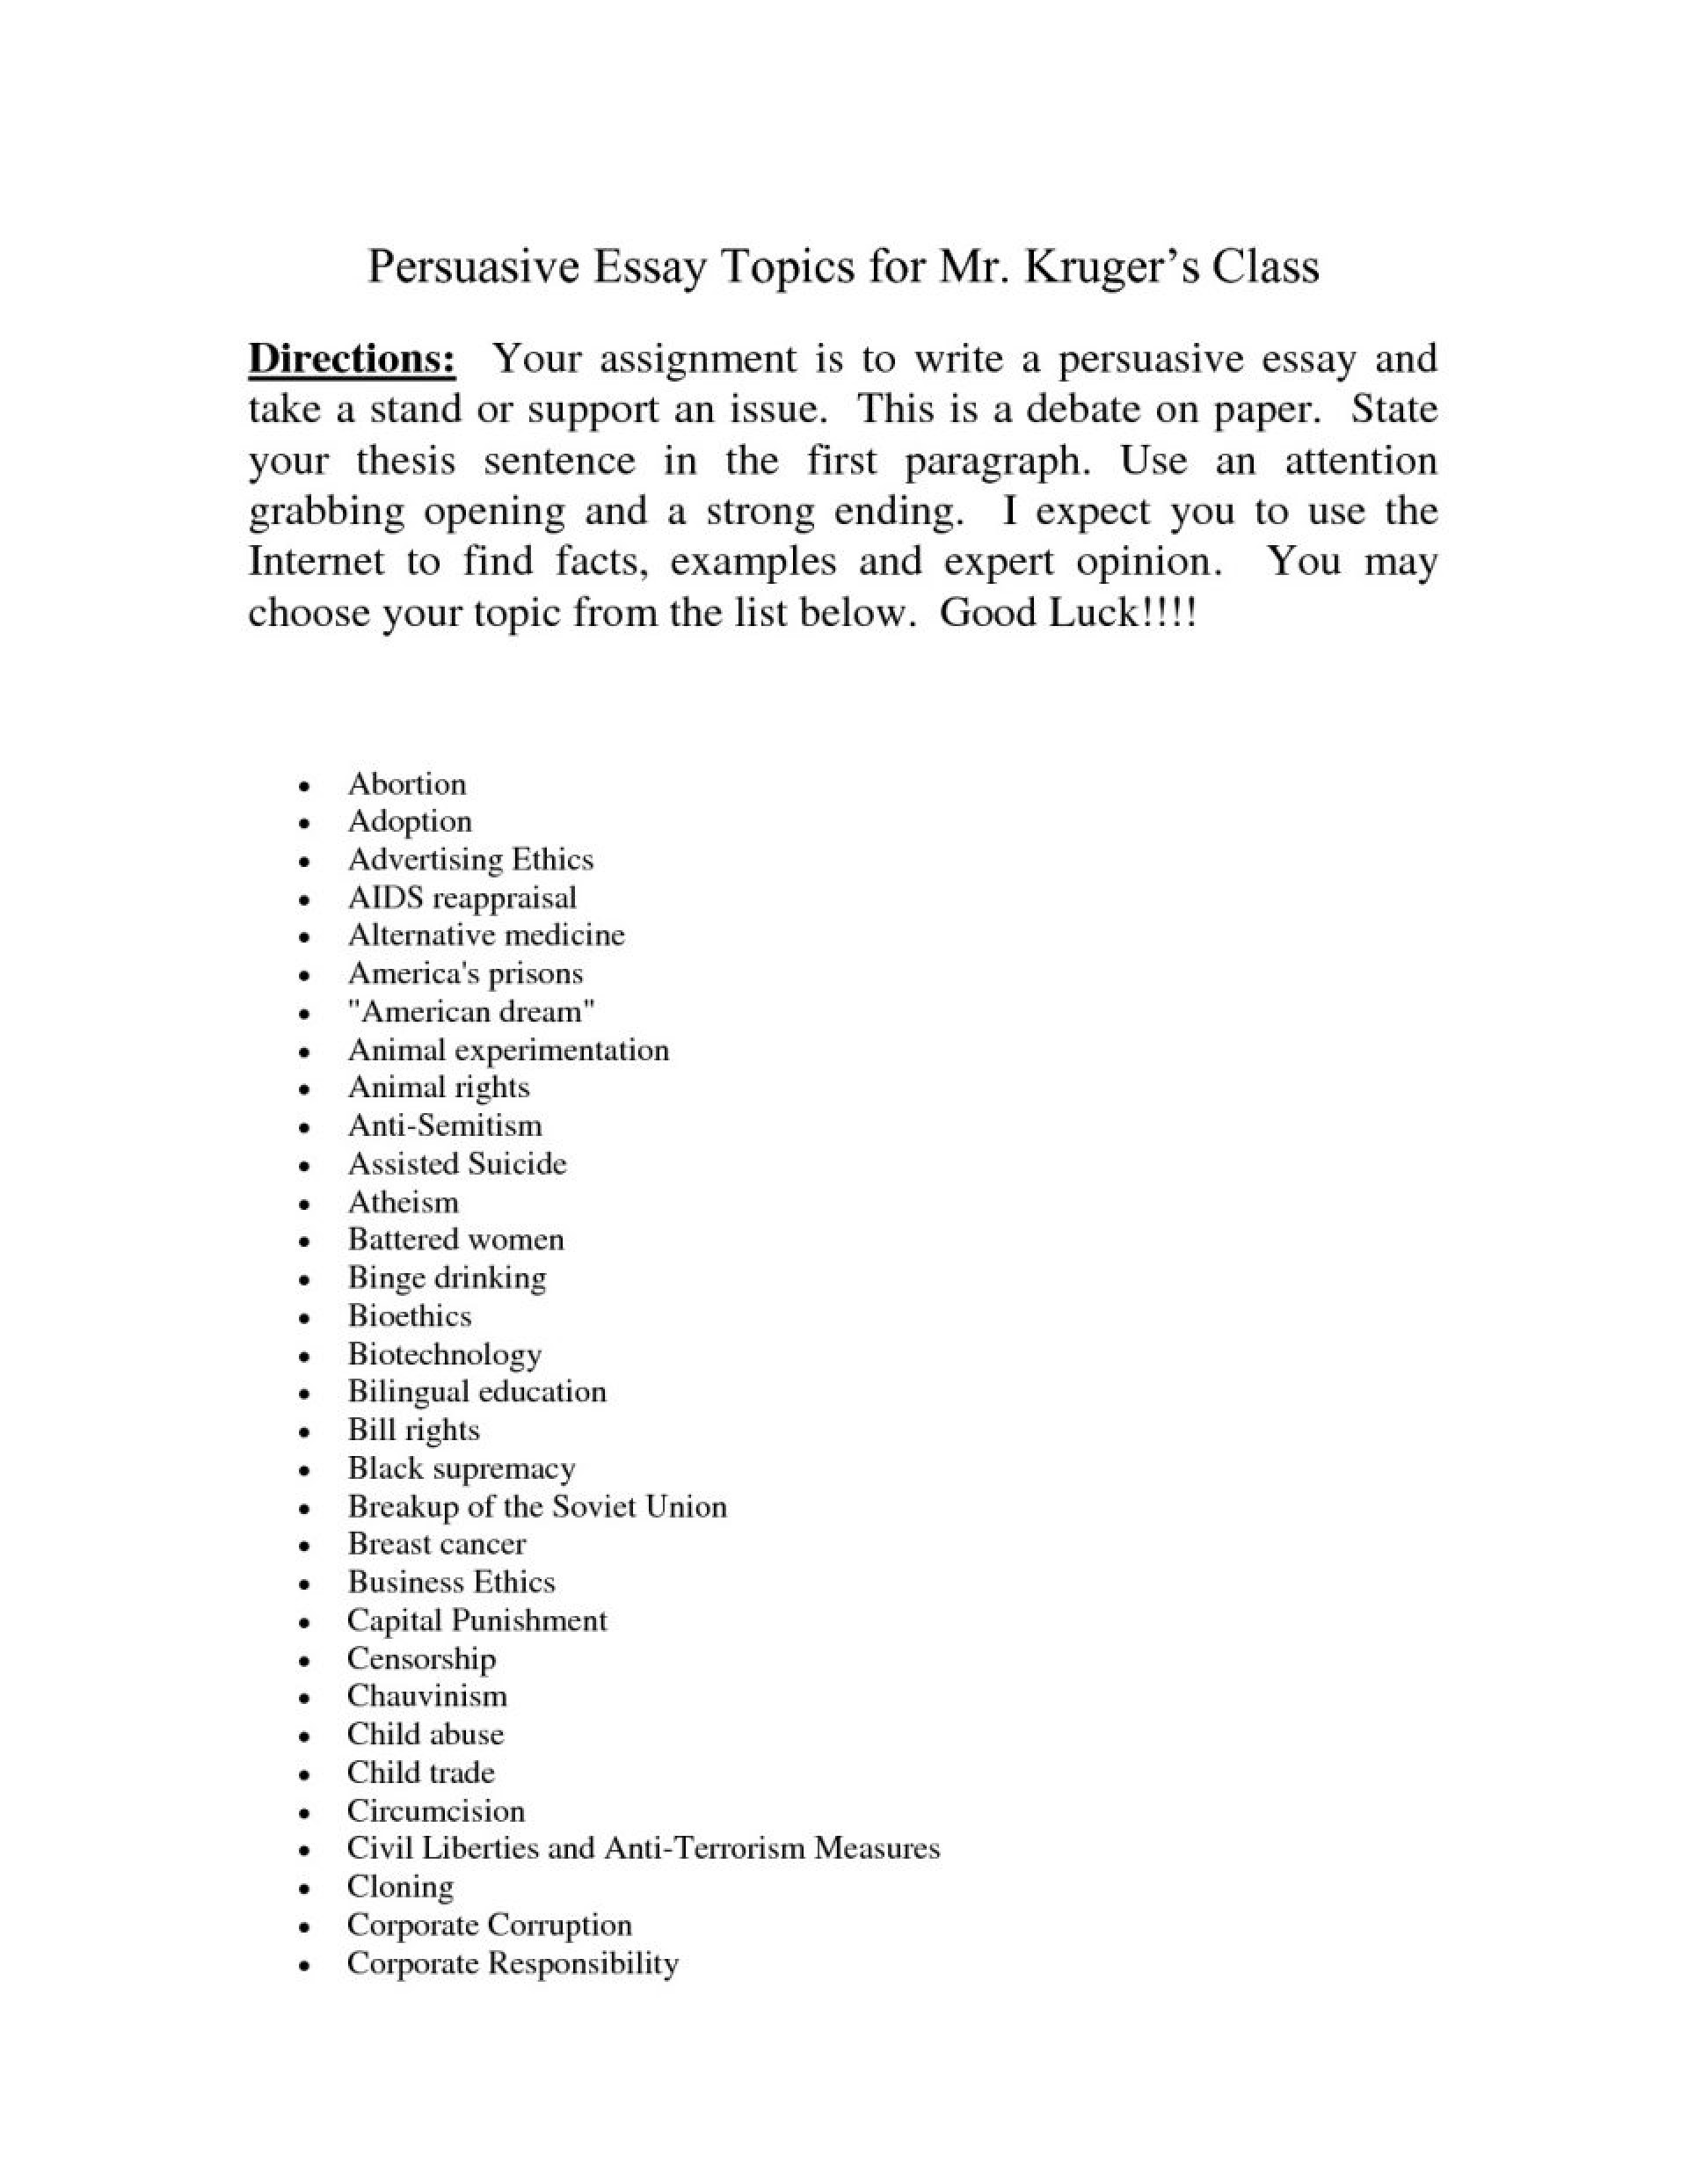 011 Research Paper Good Topic For Essay Barca Fontanacountryinn Within Persuasive Narrative Topics To Write Abo Easy About Personal Descriptive Informative Singular Sports College English Biology High School Students 1920